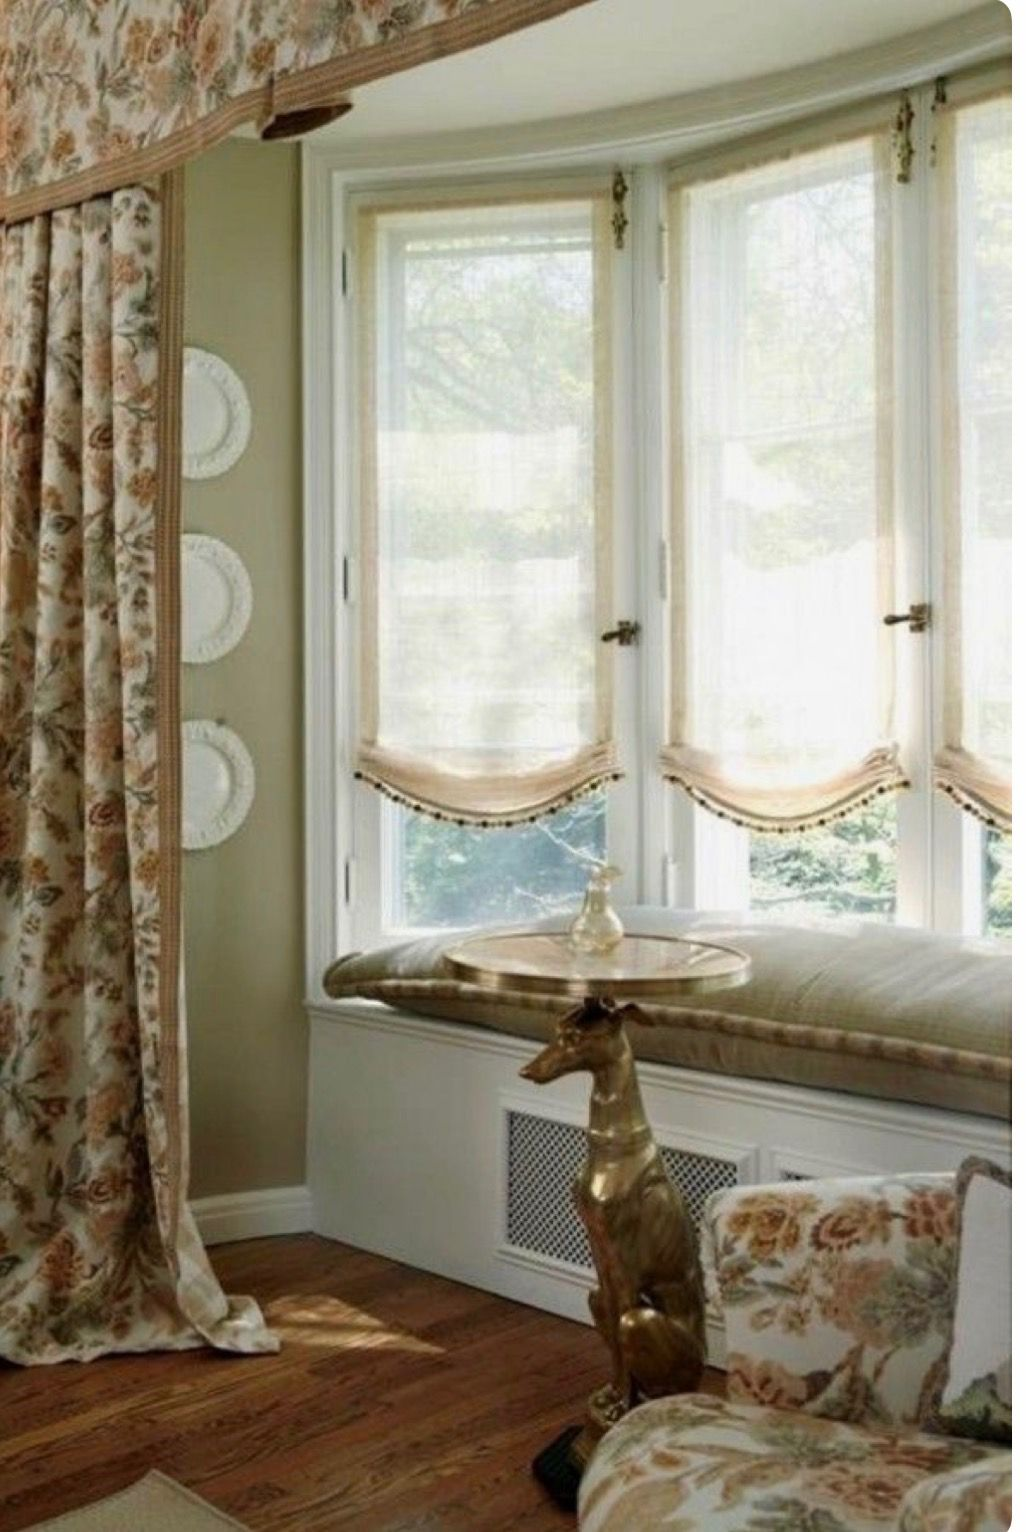 pin by john donaldson on window coverings pinterest window window coverings and bay window. Black Bedroom Furniture Sets. Home Design Ideas